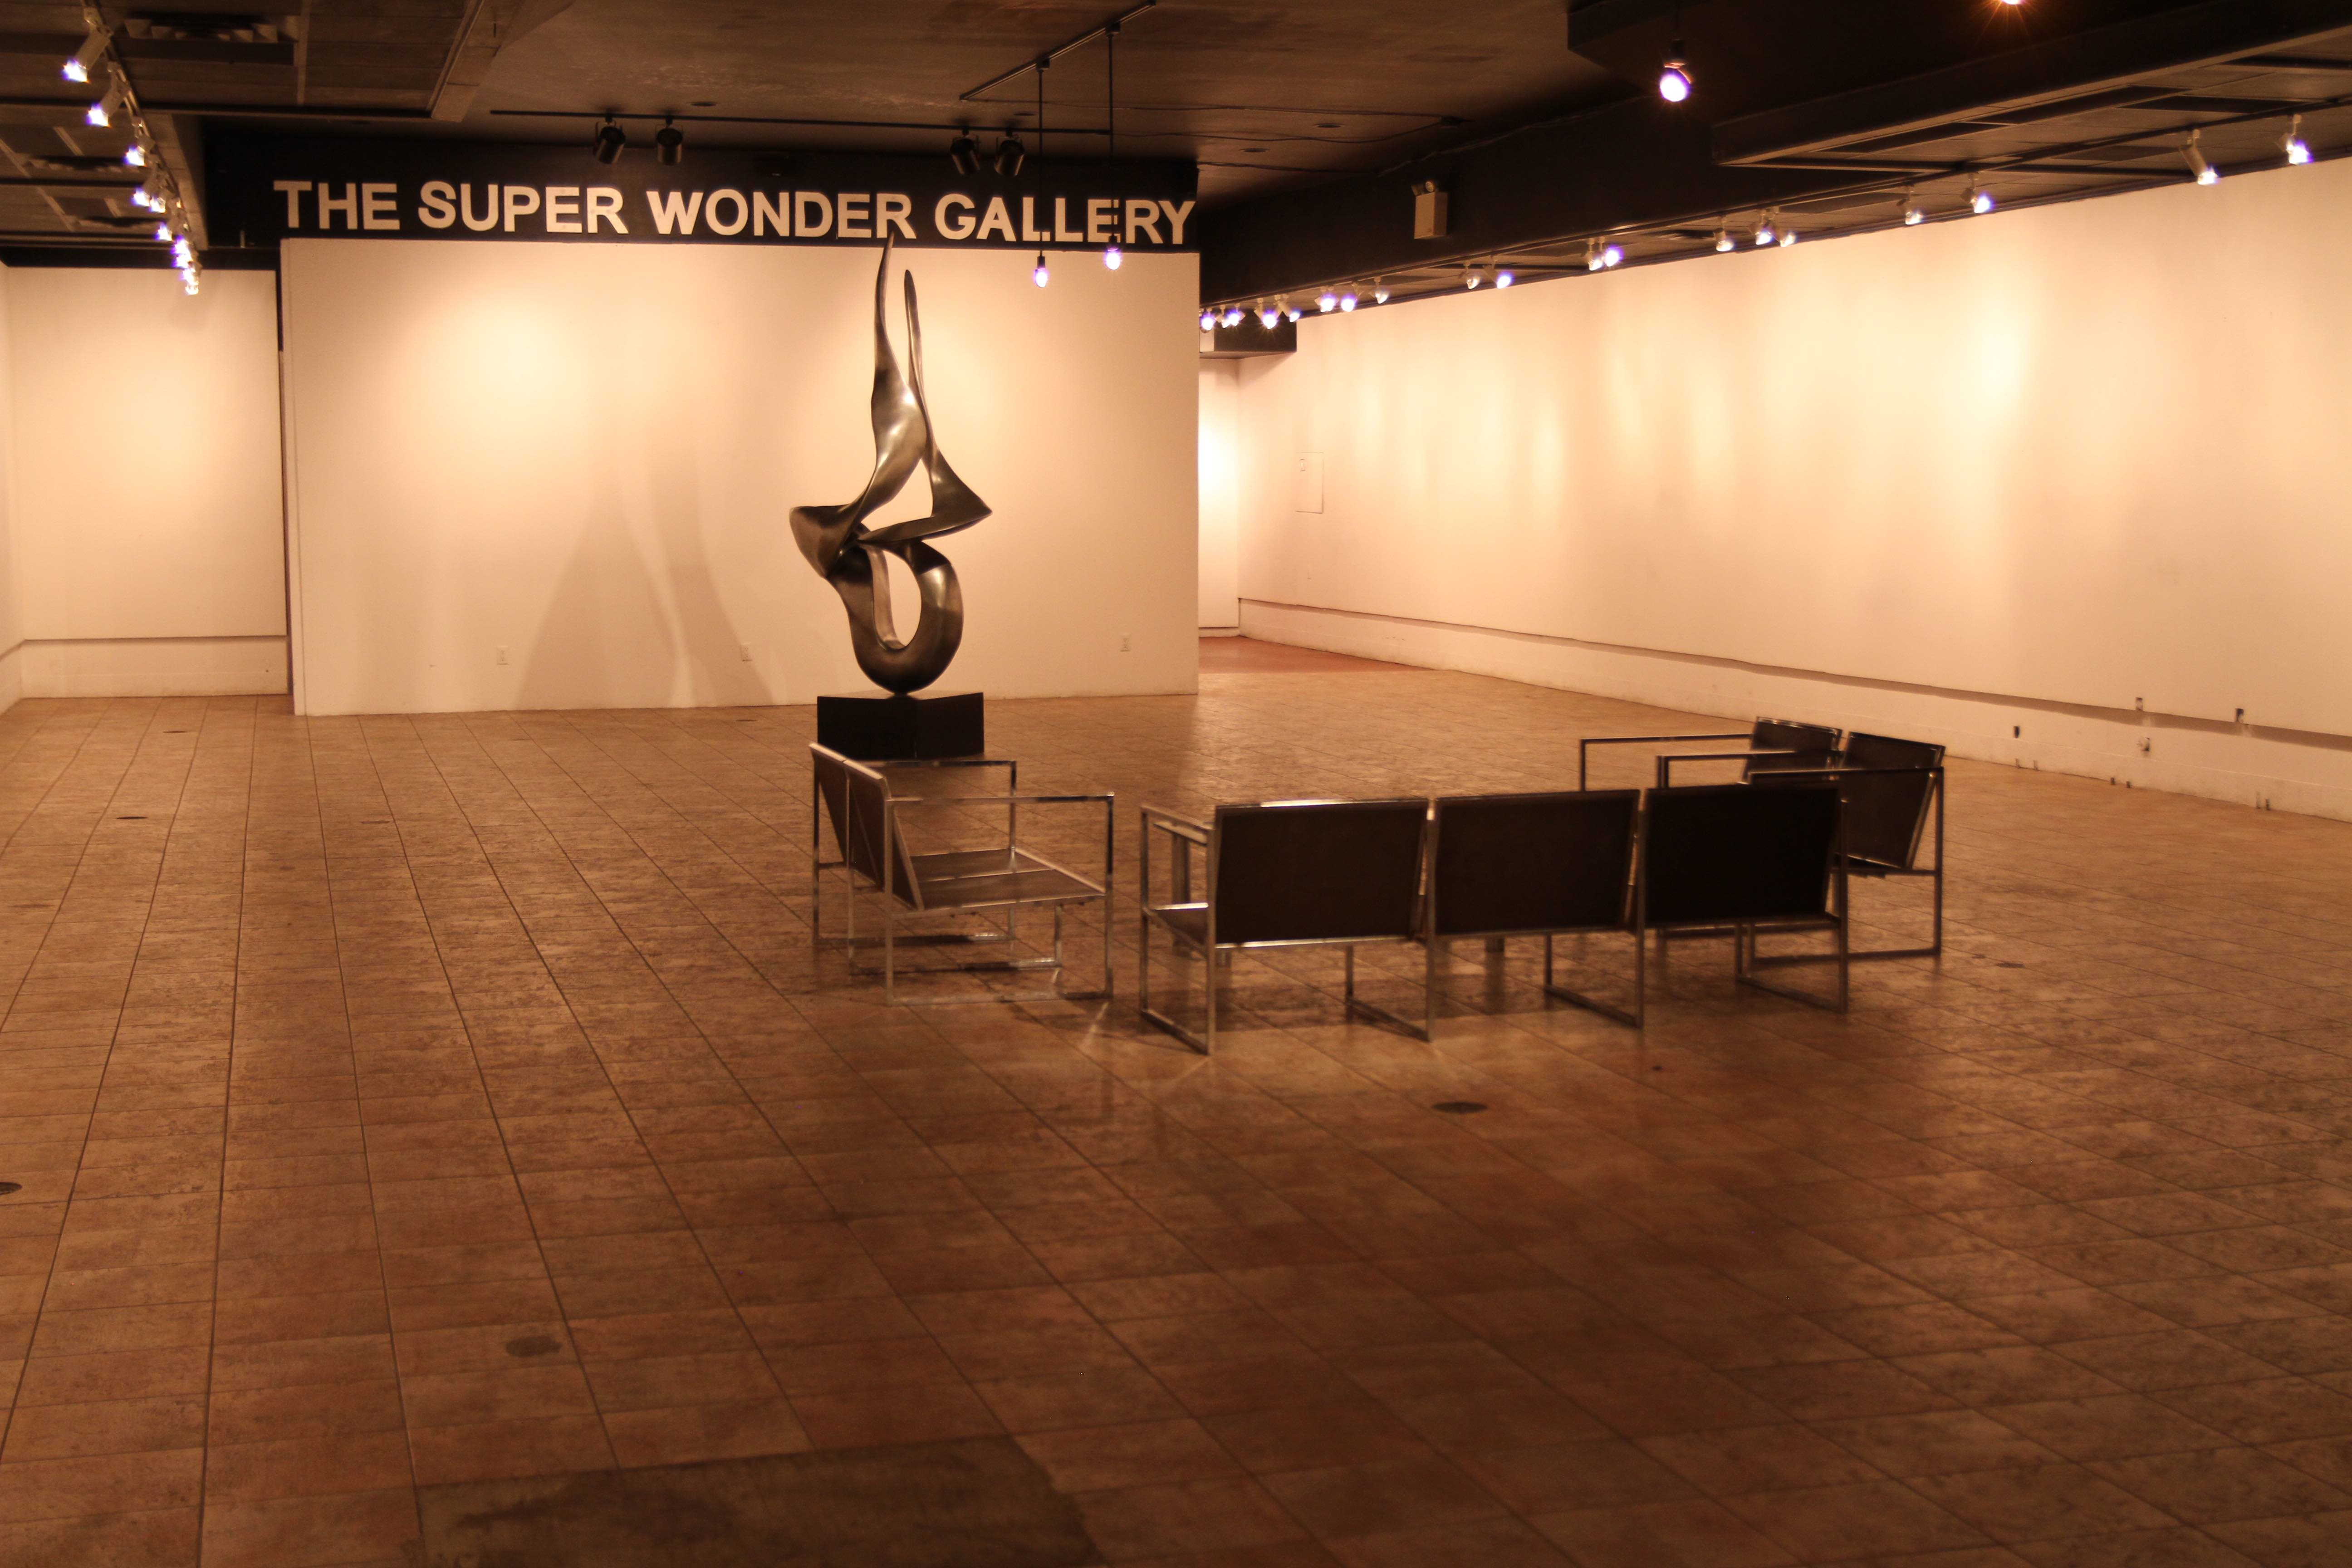 Centre gallery